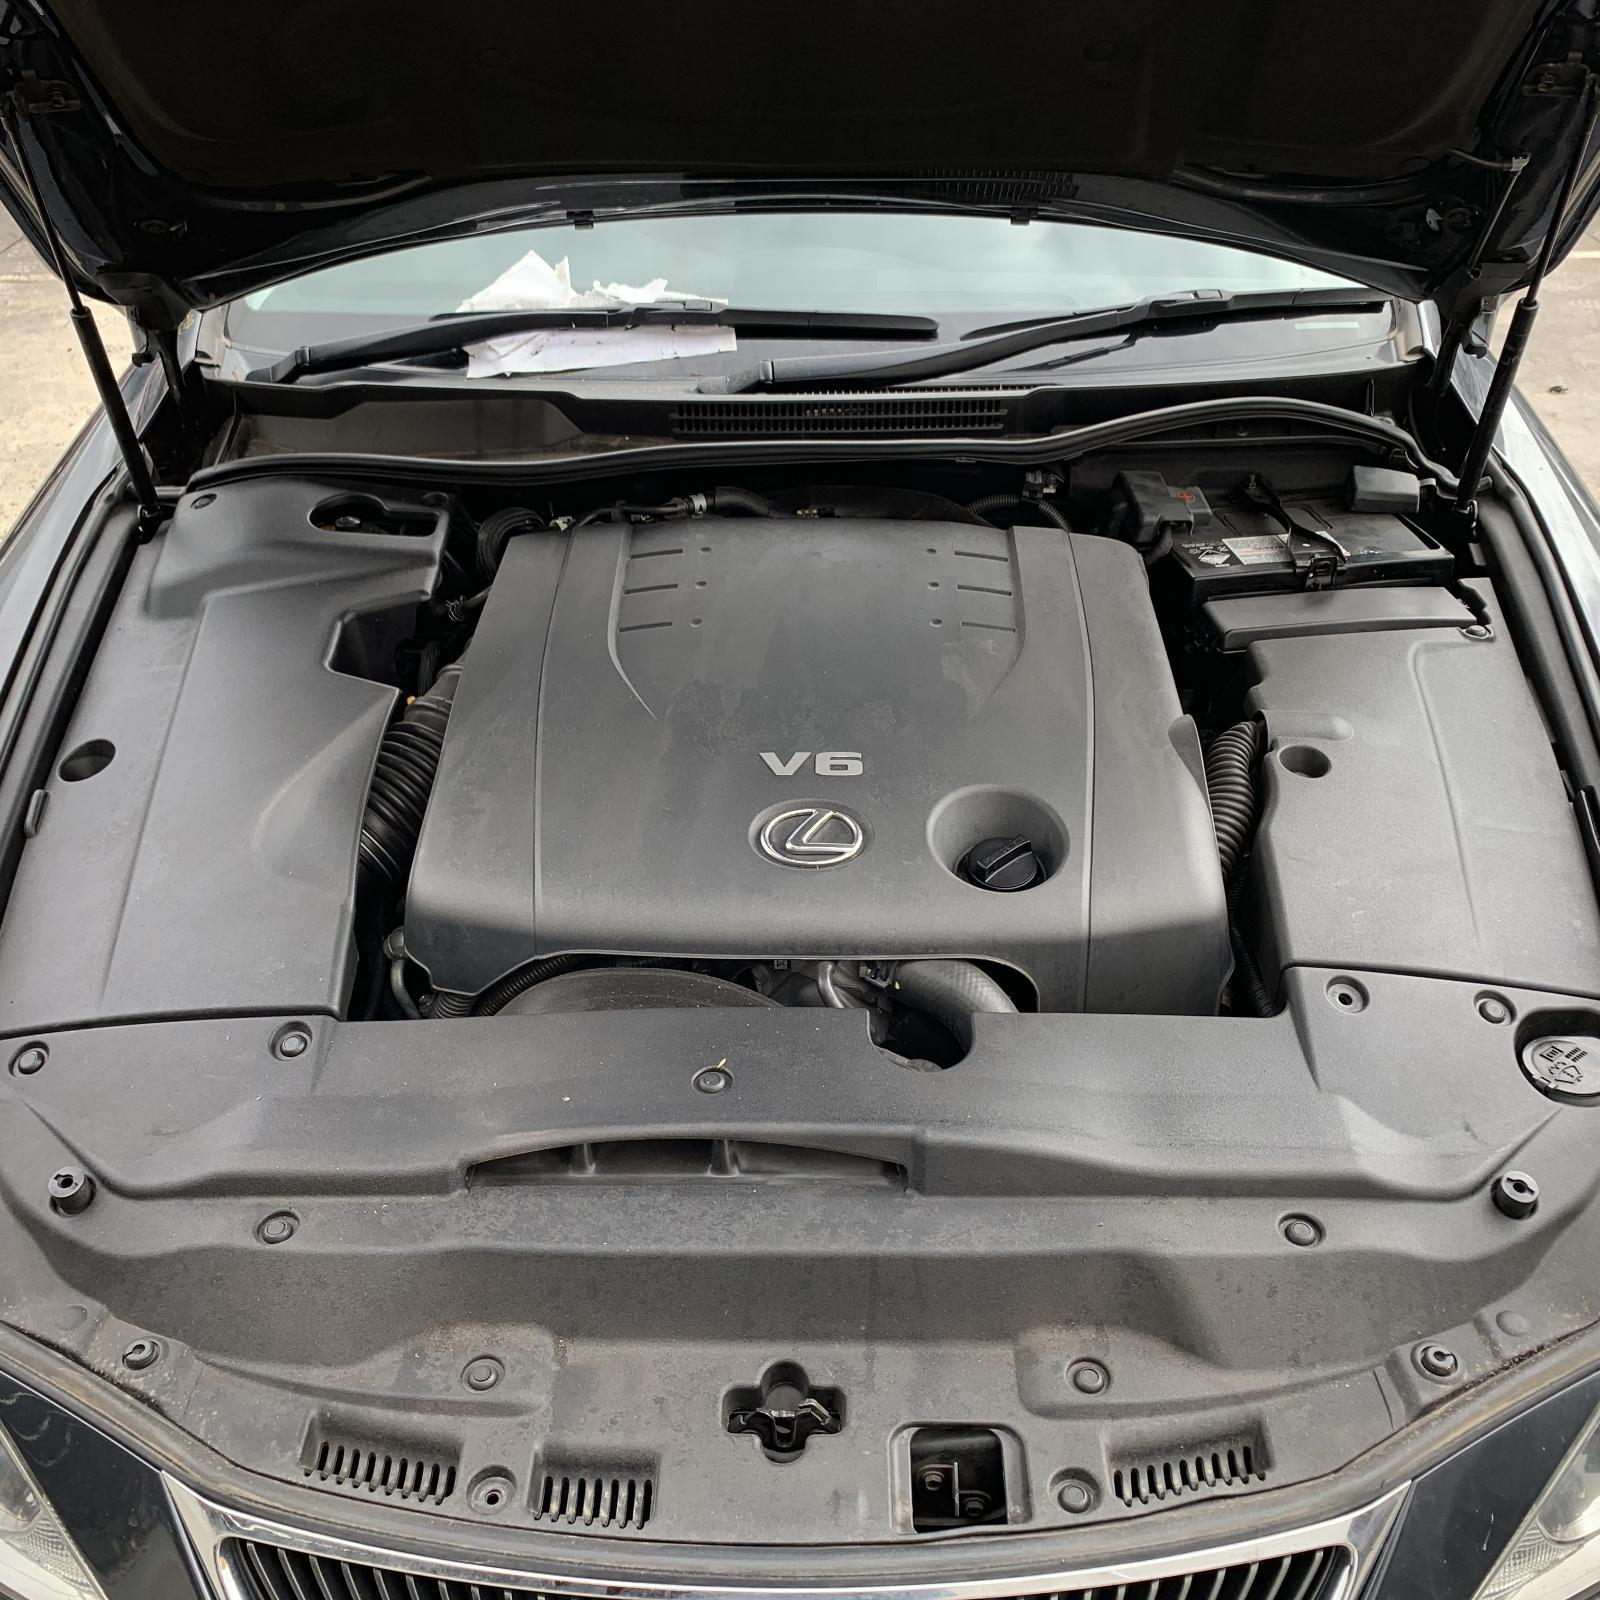 LEXUS IS250/IS250C, Engine, PETROL, 2.5, 4GR, IS250/IS250C, GSE20R, 11/05-12/14